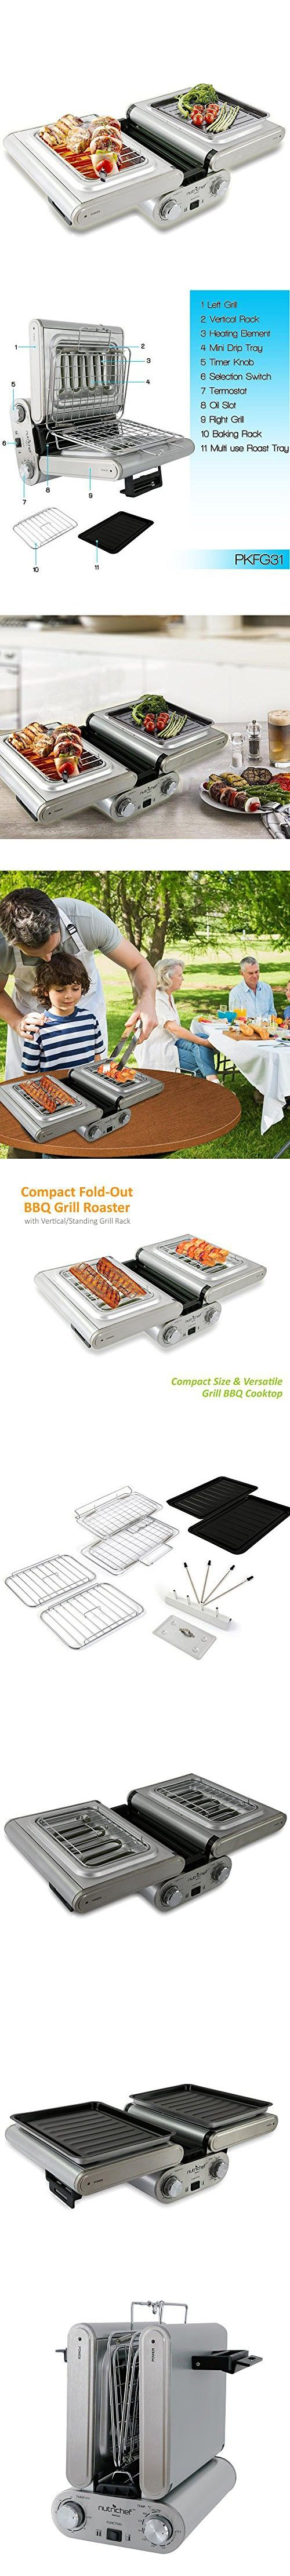 NutriChef Cooking Grill | Fold-Out Indoor/Outdoor Electric Griddle with Vertical Grill Rack | For Fish, Steak, Skewers | Tabletop Safe | Teflon Tray | Drip Pan | Rotary Timer - Max Temp 464F (PKFG31)